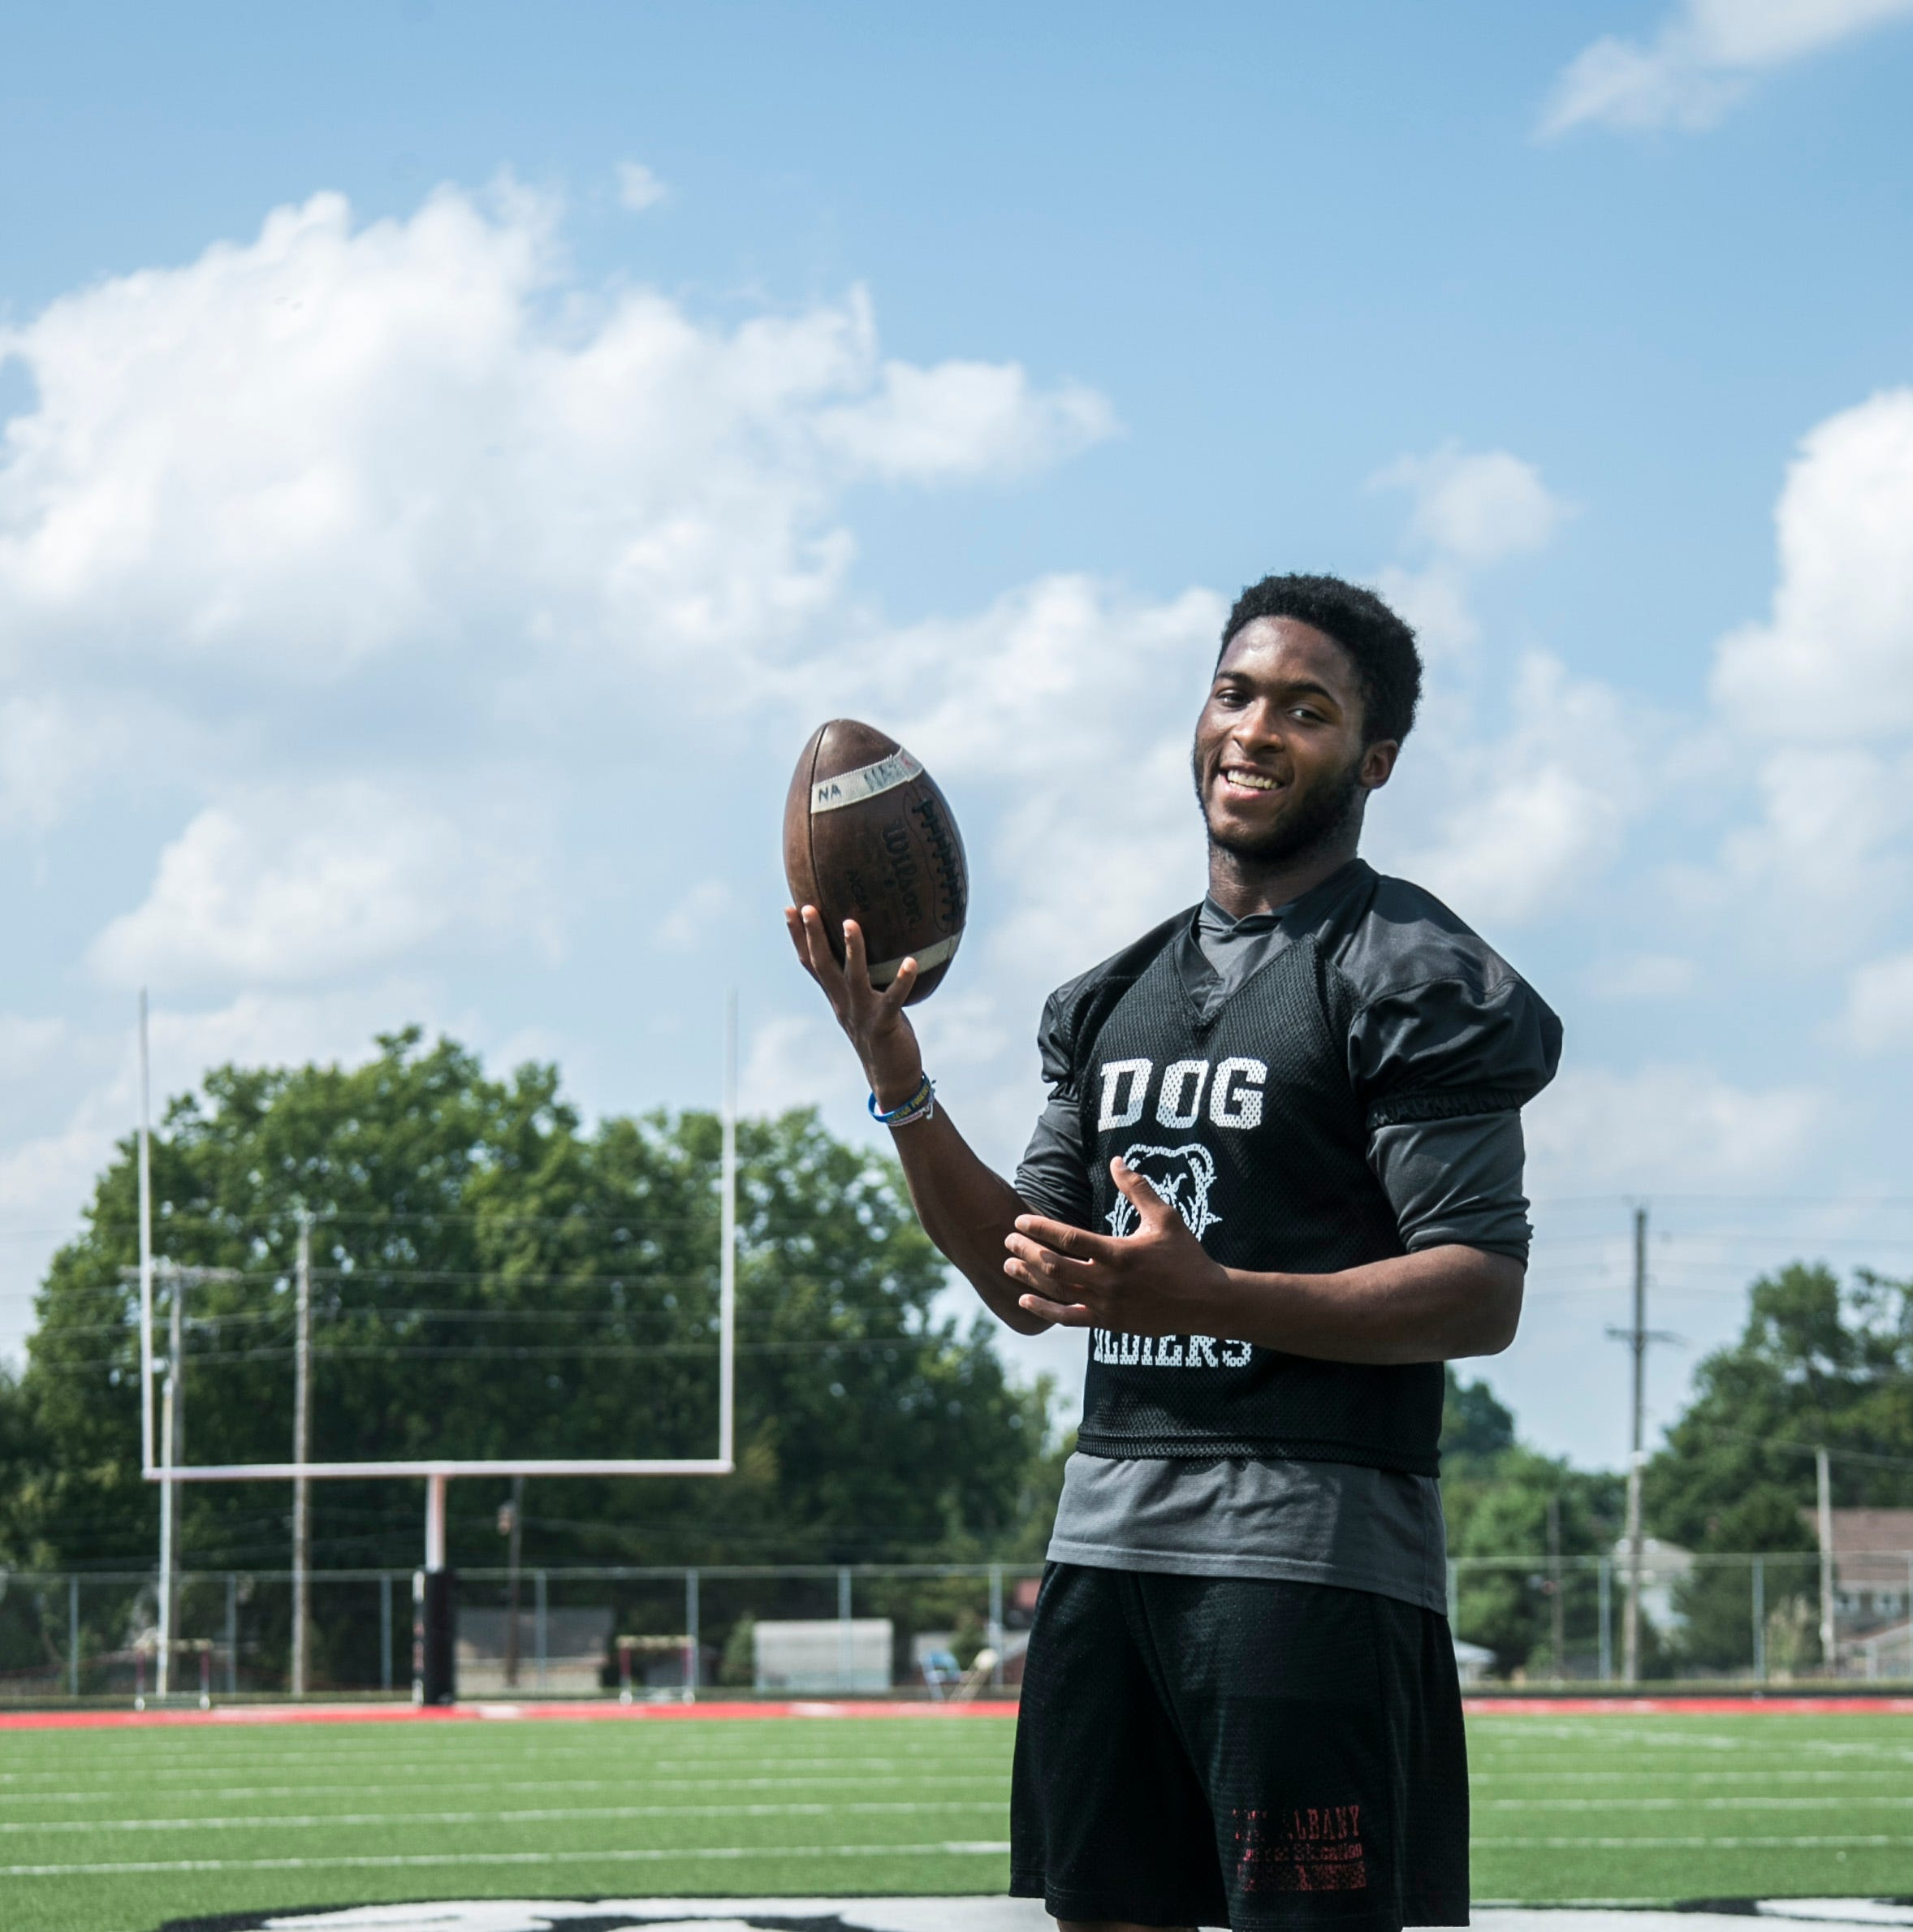 From linebacker to cheerleader, Koran Givens does it all at New Albany